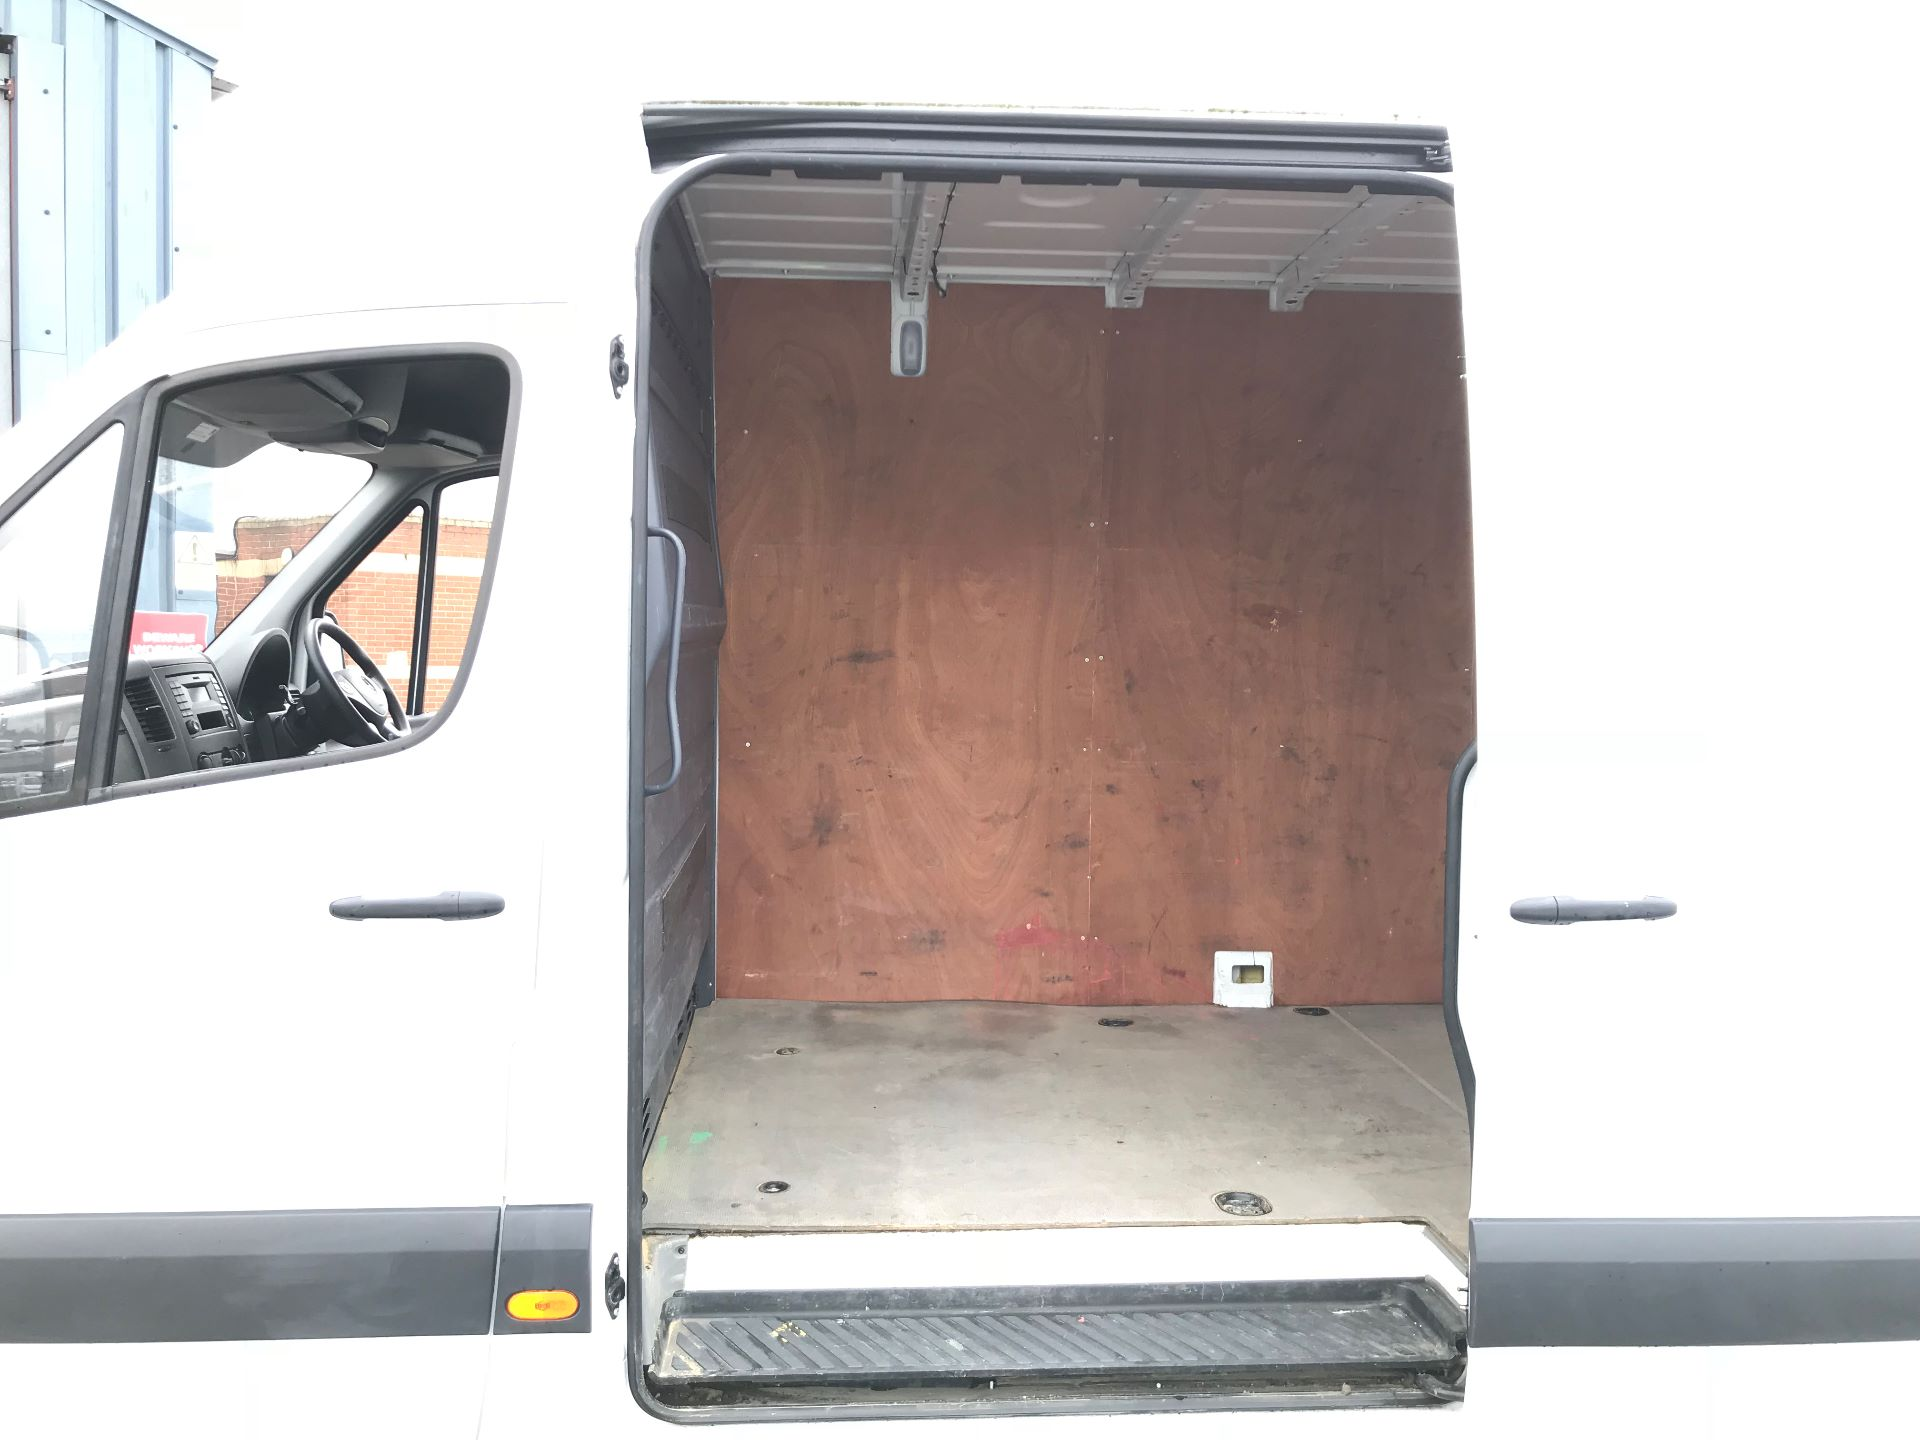 2017 Mercedes-Benz Sprinter 3.5T High Roof Van *VALUE RANGE VEHICLE CONDITION REFLECTED IN PRICE* (KY17GXT) Image 17